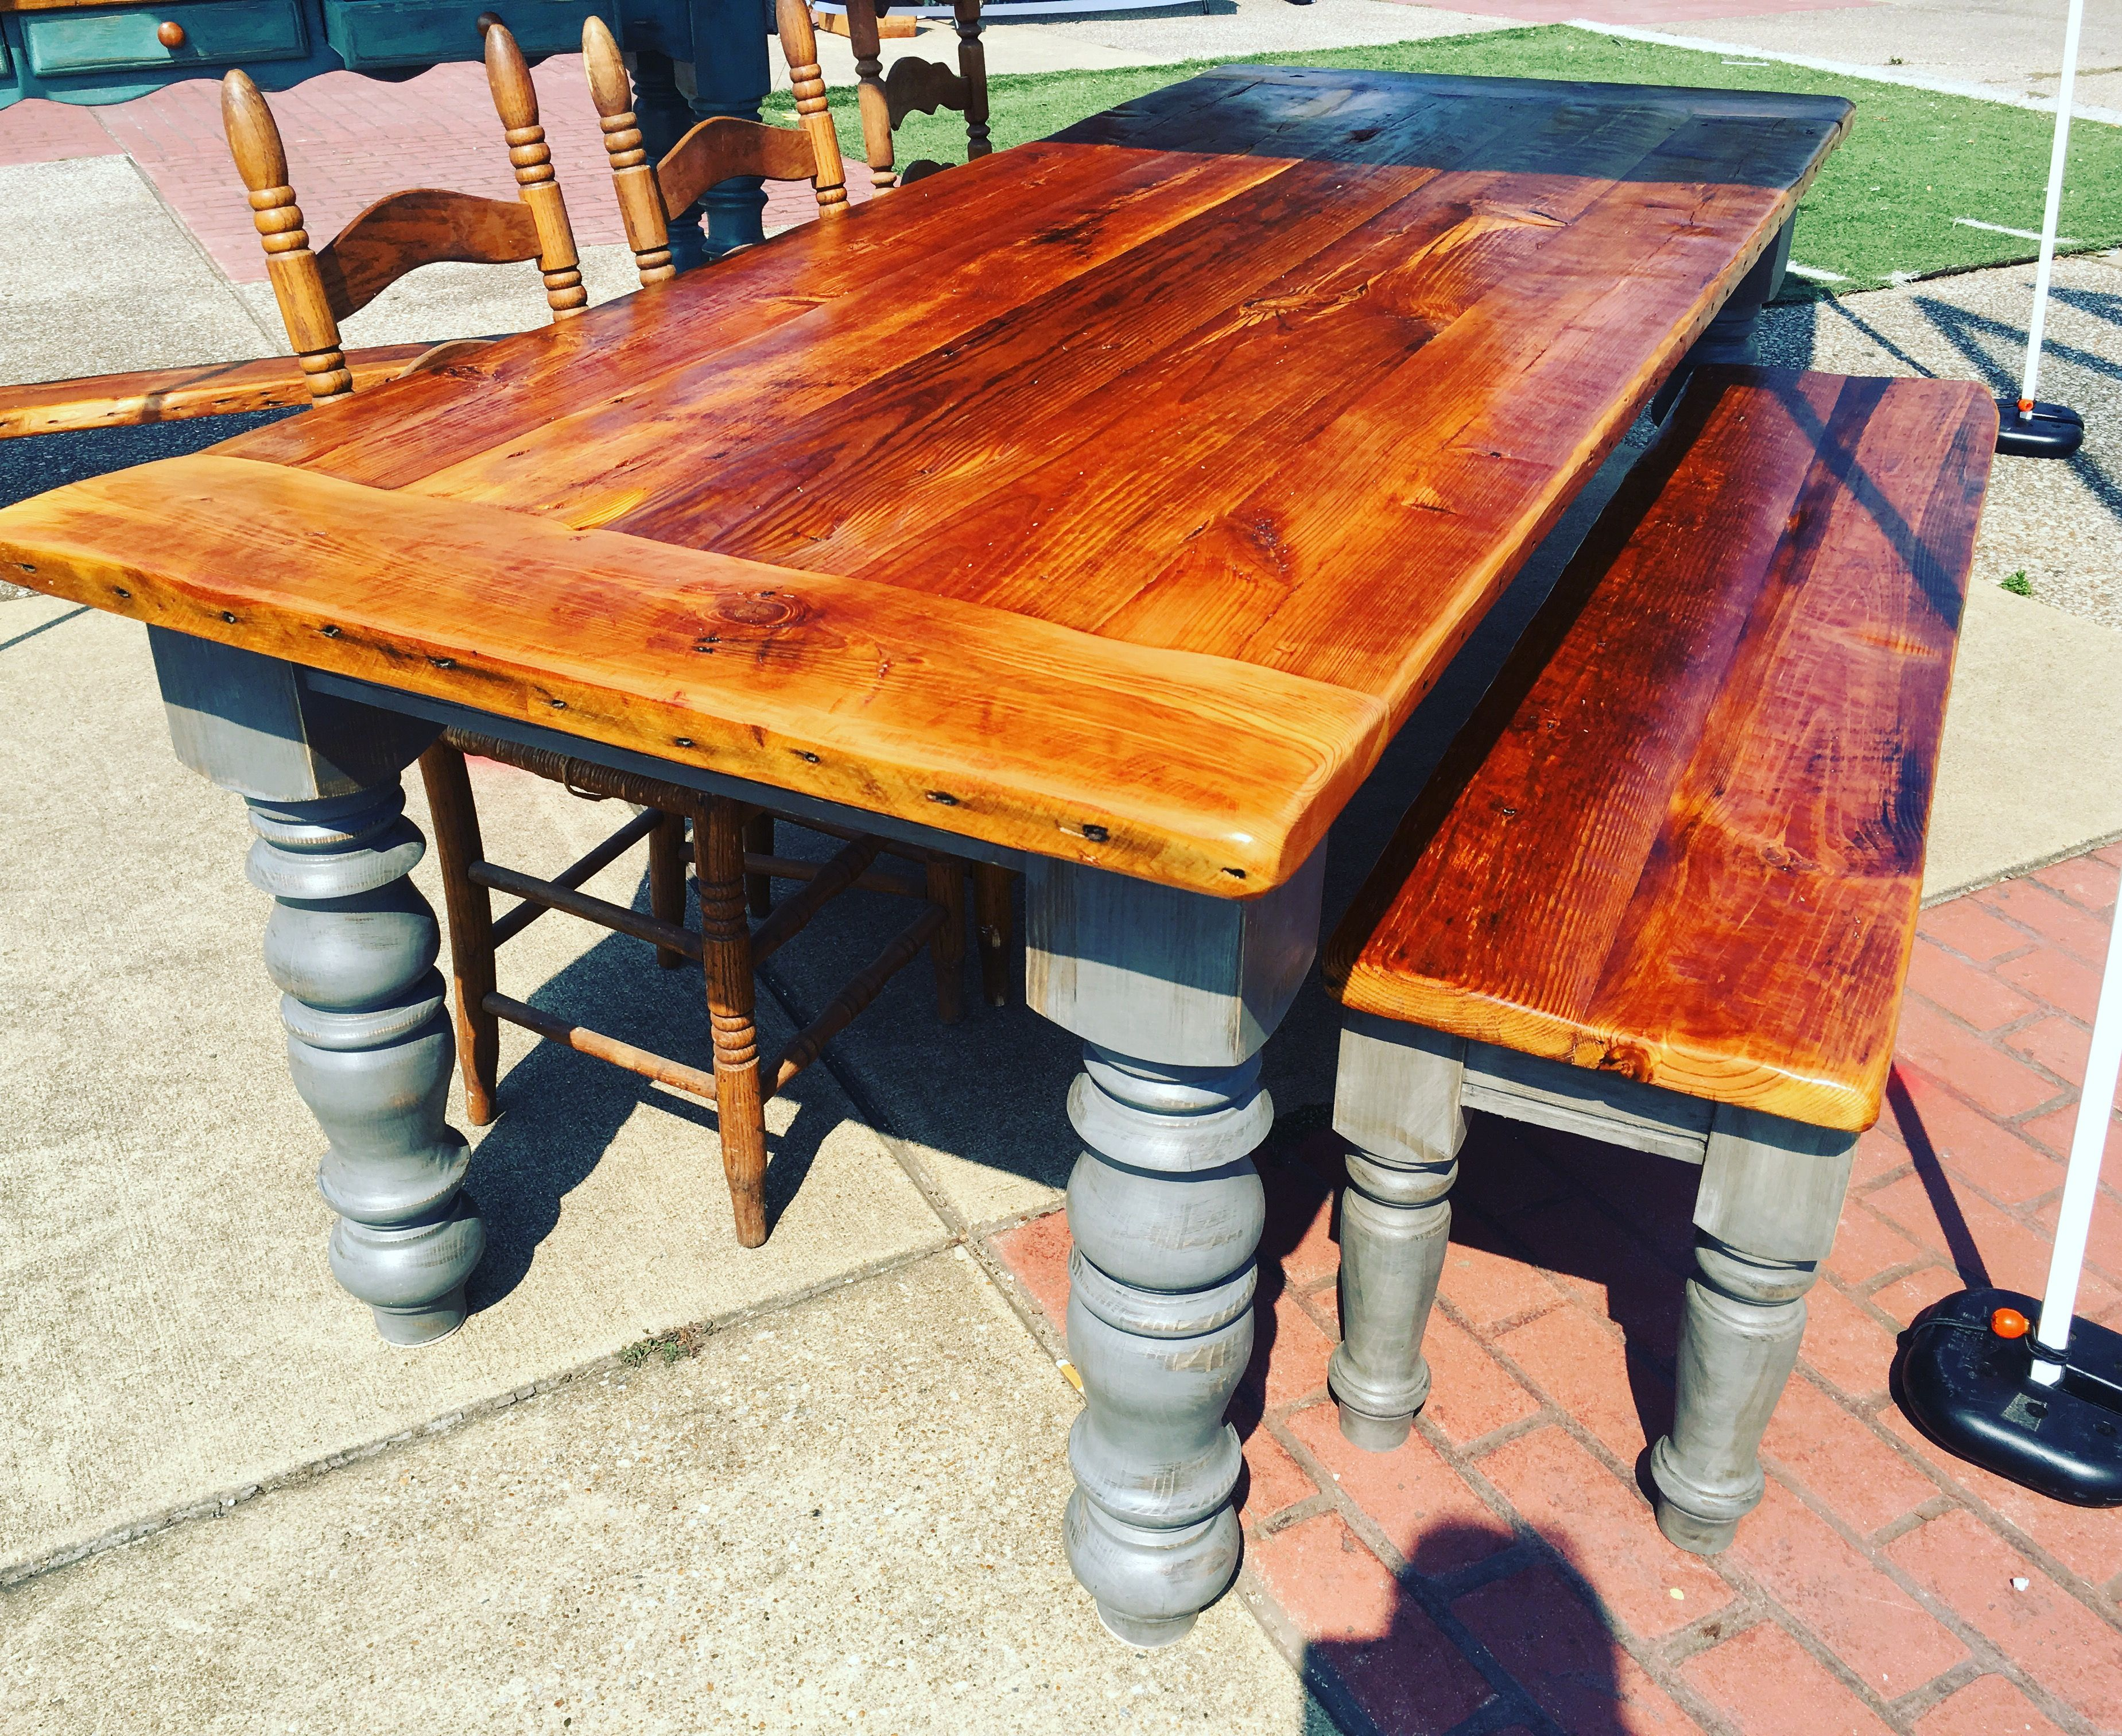 8 Foot Antique Heart Pine Table